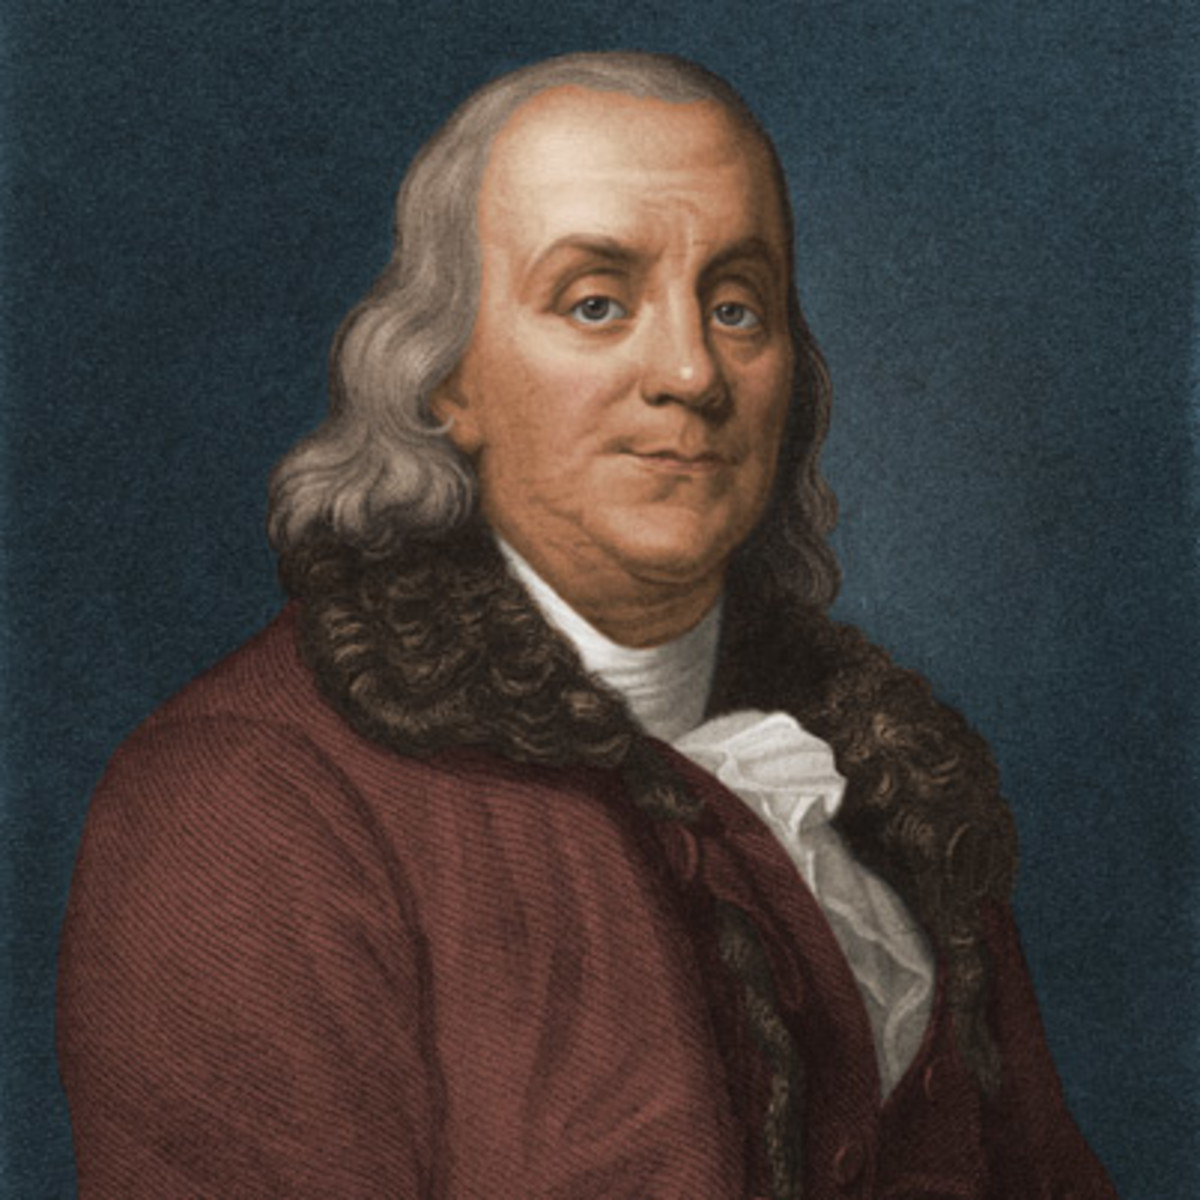 """Benjamin Franklin (1706-1790) - A scientist, diplomat, inventor, printer/publisher and politician- Benjamin Franklin was a man of many talents who, even today, is highly respected (so much so that he's on the $100 bill). He never served in an official U.S.A political position (though he was """"president"""" or governor of Pennsylvania for three years when it was still a colony), but his work was crucial in both the instigation of the revolution and the framework for the country to come afterwards. Franklin is well-known for being a drafter of several important U.S. documents, including the Declaration of Independence. Franklin also wrote """"Poor Richard's Almanack,"""" a forecasting book featuring poetry, weather predictions, and astronomy."""